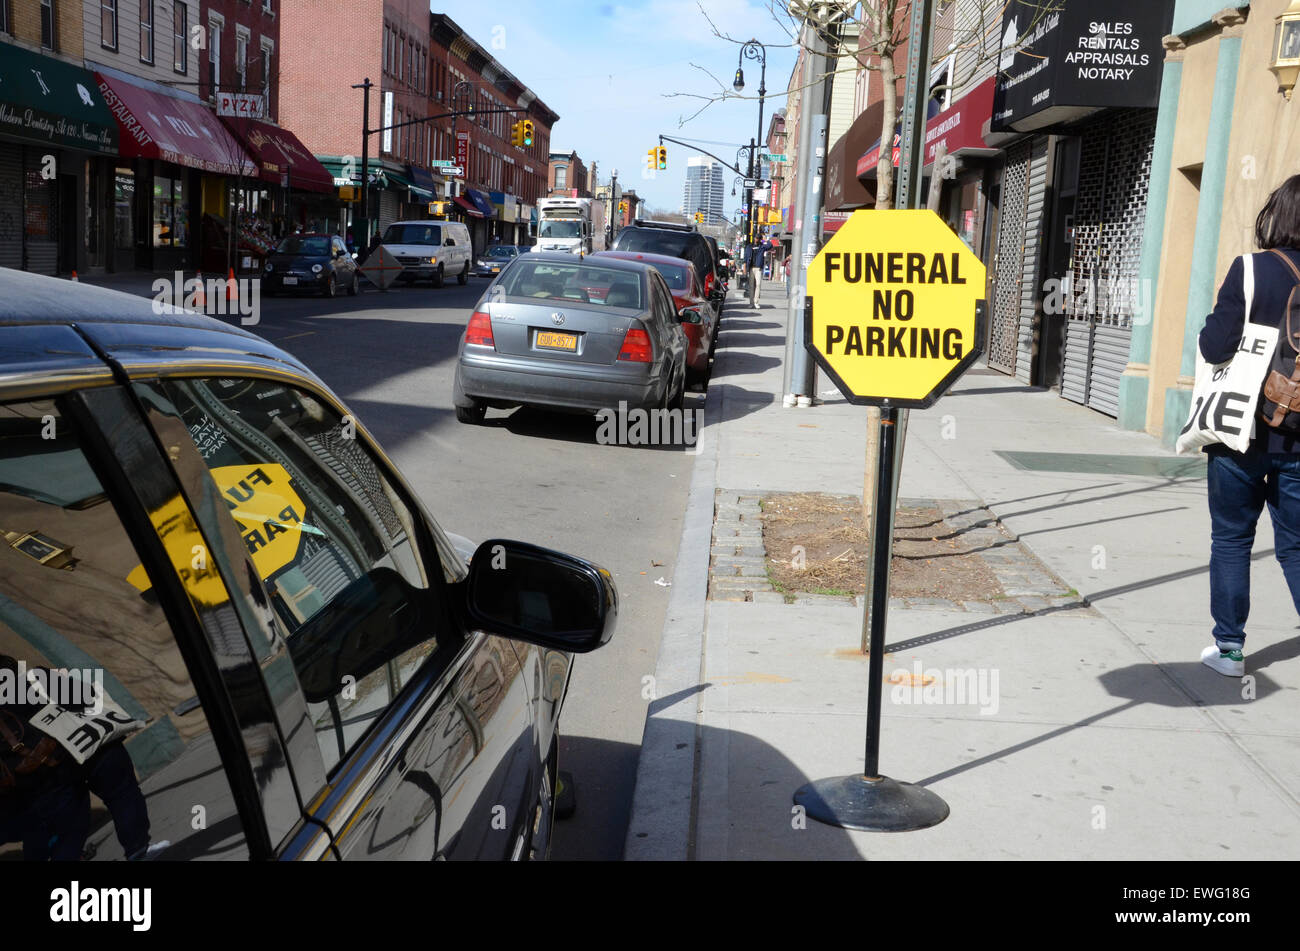 funeral no parking sign new york hearse - Stock Image